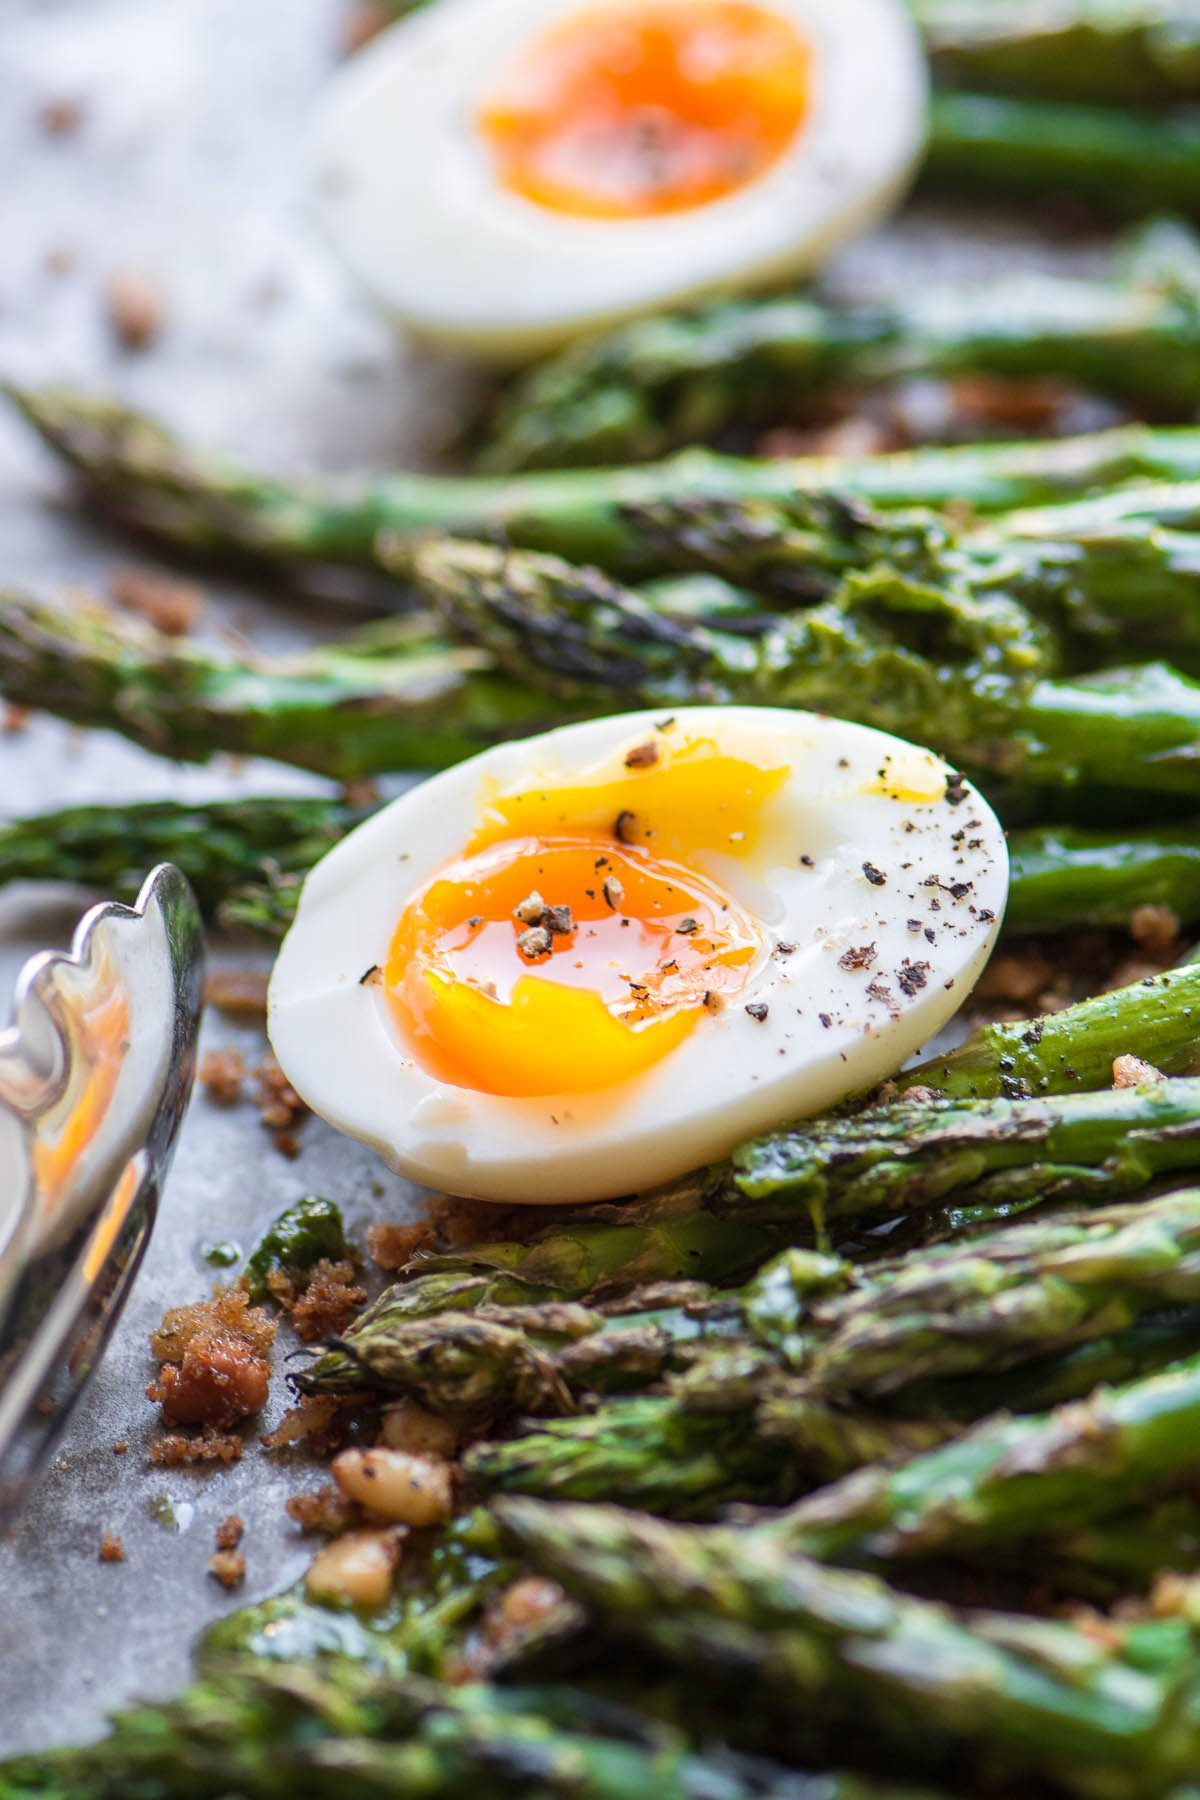 Roasted asparagus with a runny egg